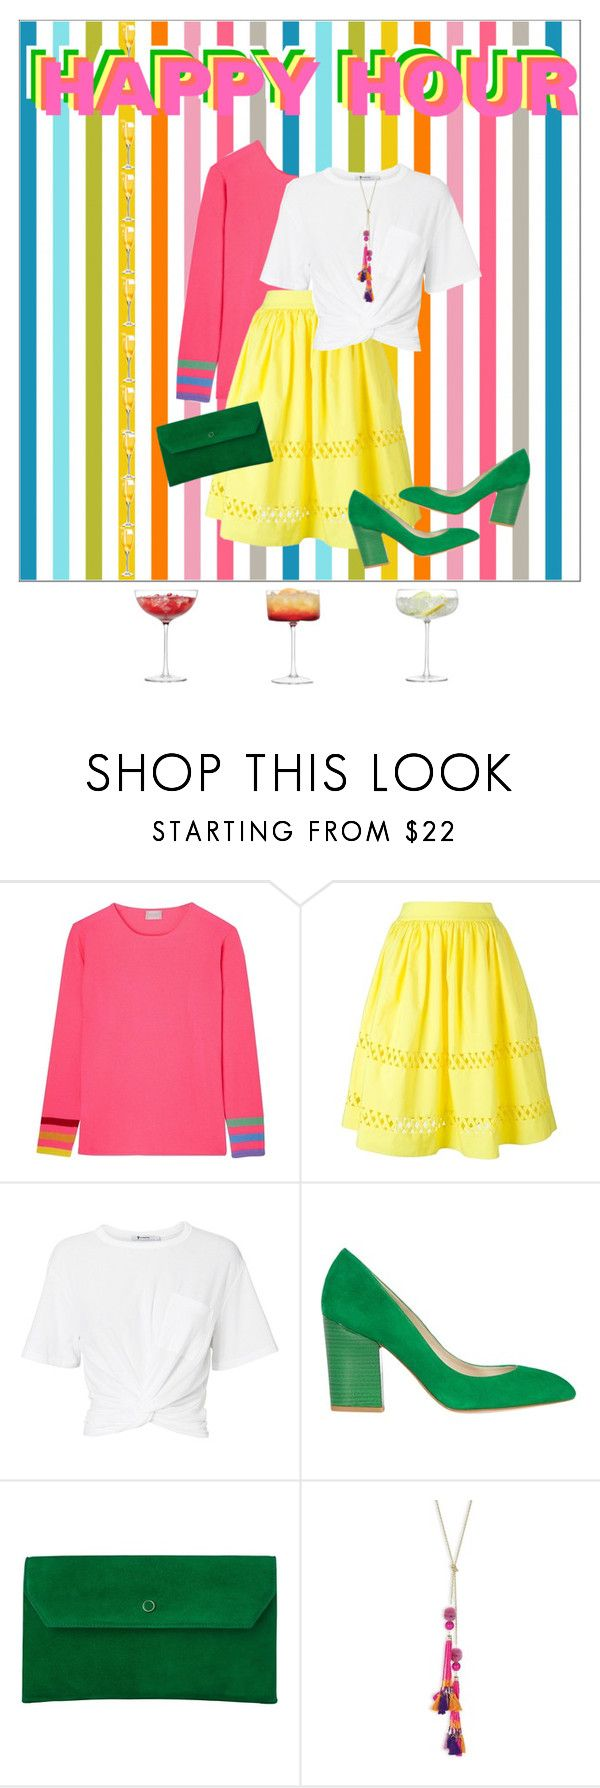 """""""Drinks on me"""" by nicolineb ❤ liked on Polyvore featuring Orwell + Austen, Alice + Olivia, T By Alexander Wang, Karen Millen, L.K.Bennett, Robert Rose and LSA International"""